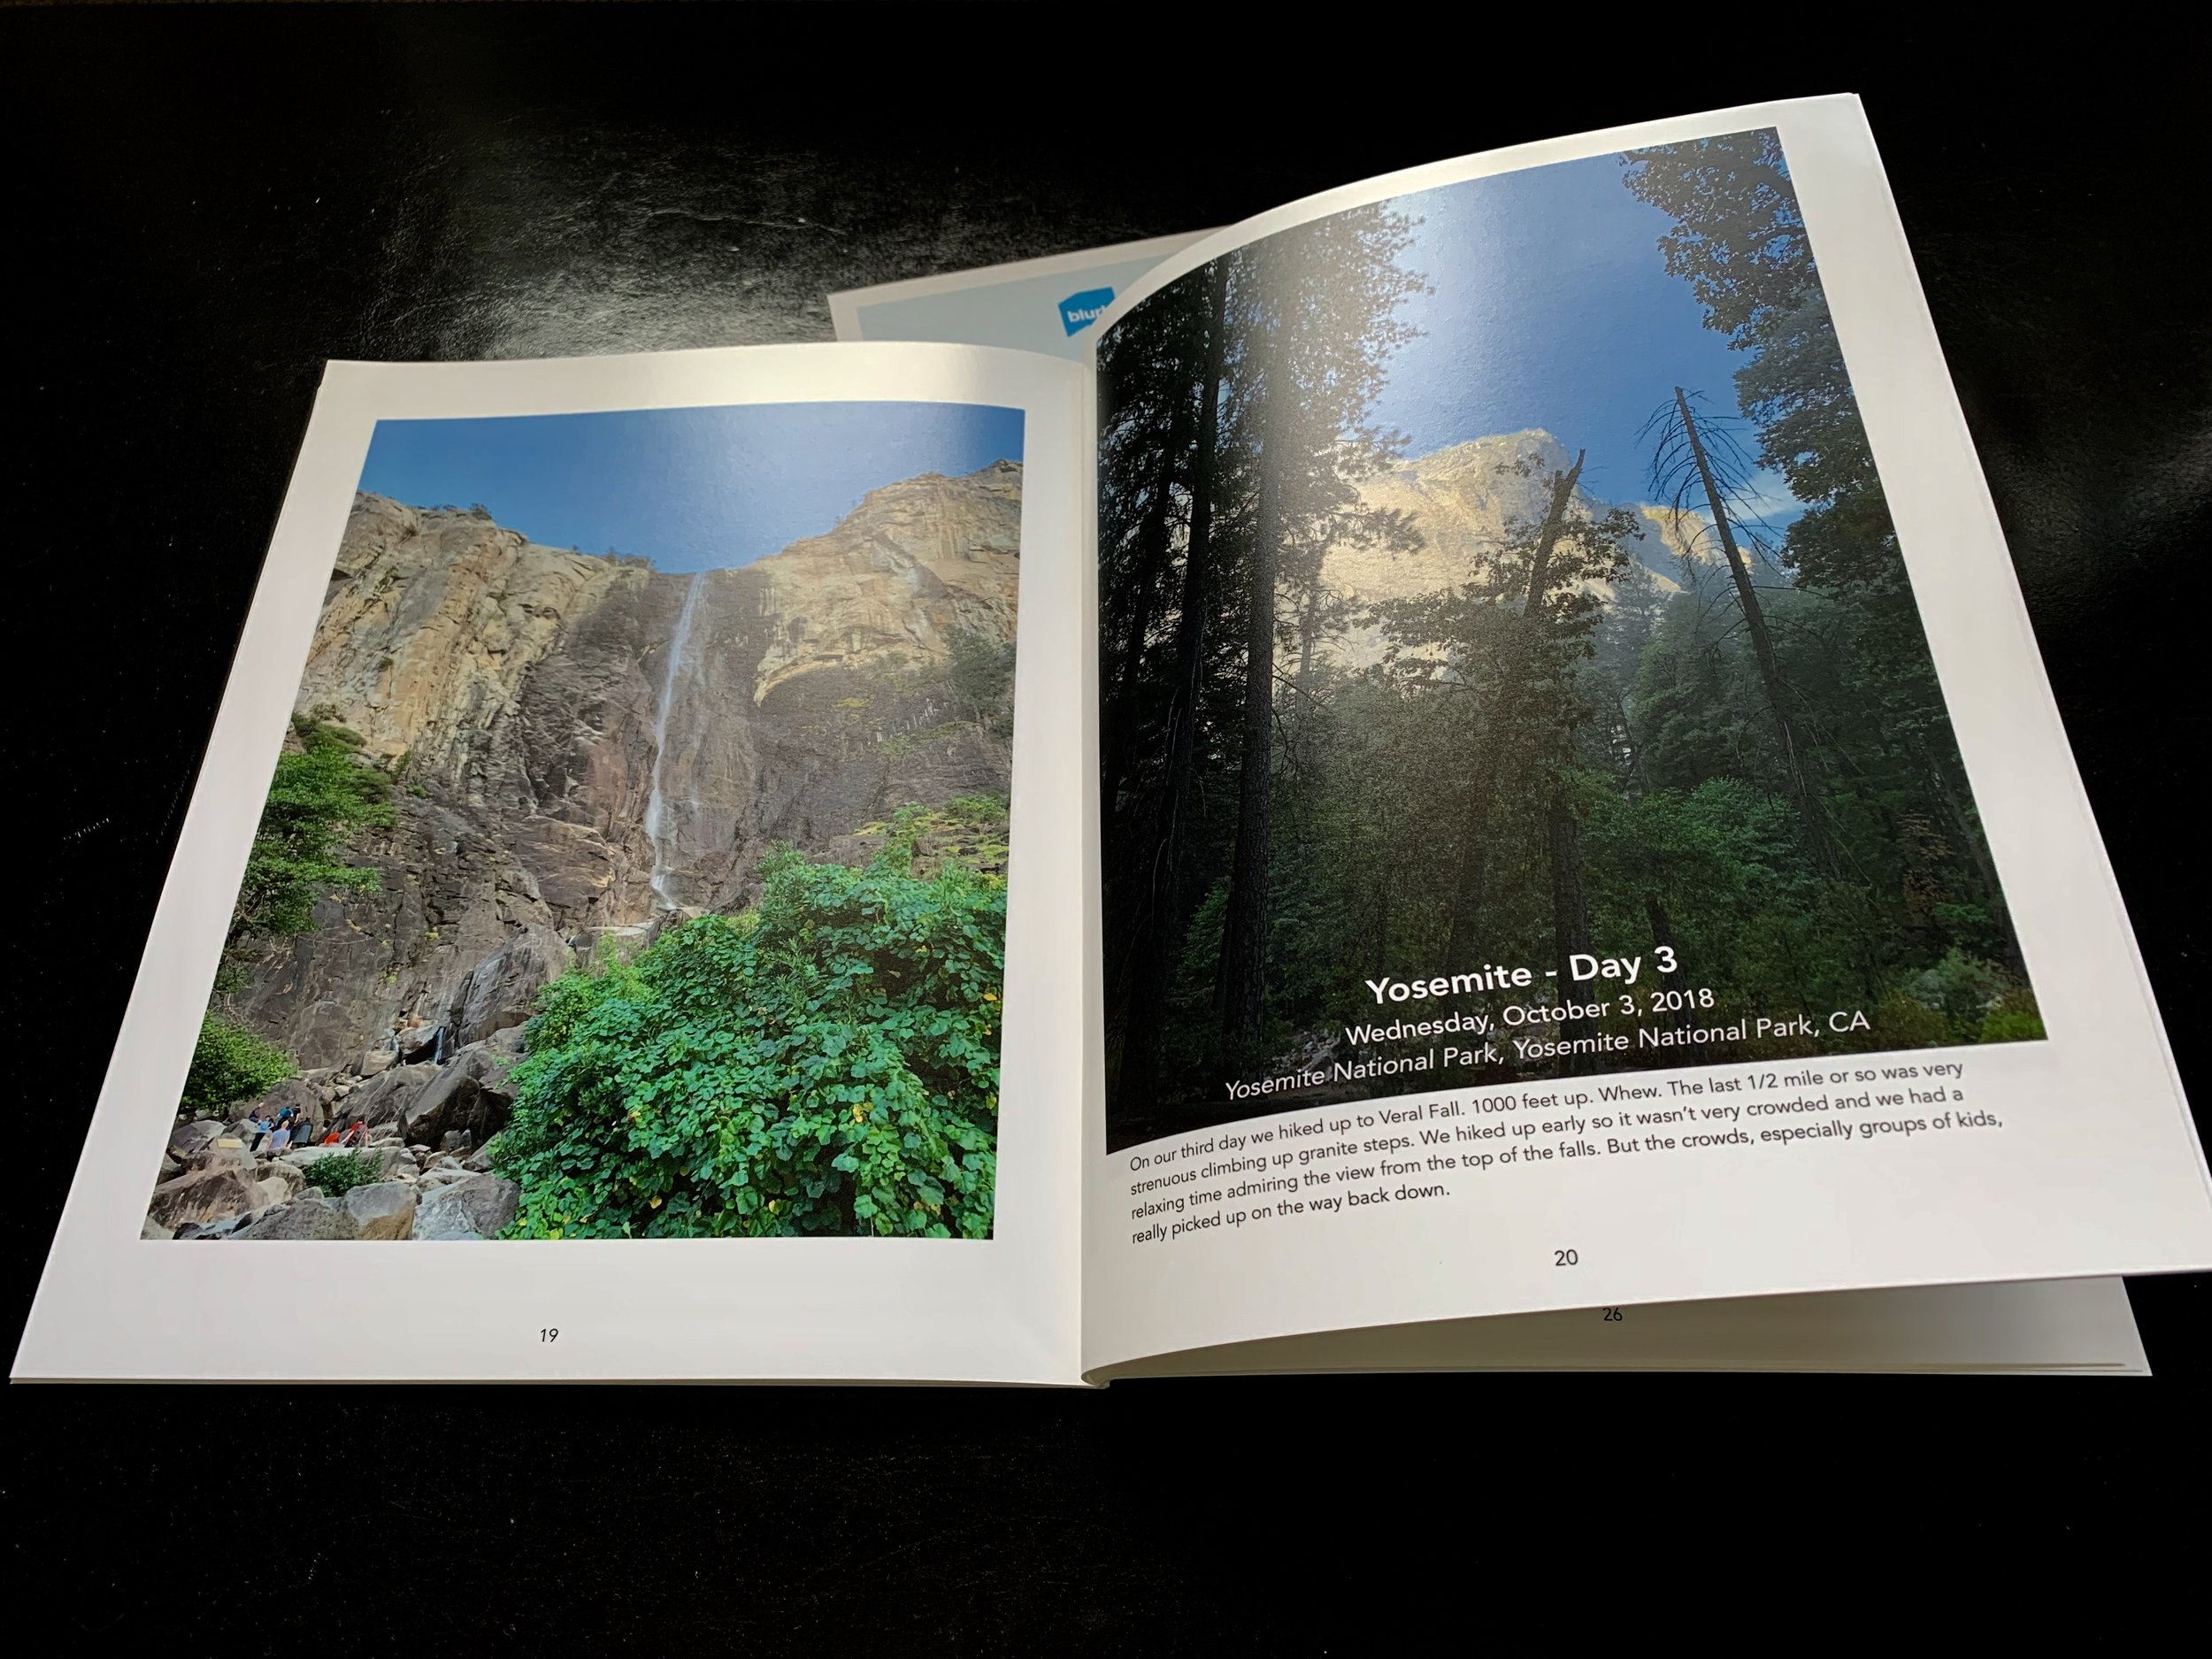 Timebox PDF printed by Blurb as a magazine-style photo book.